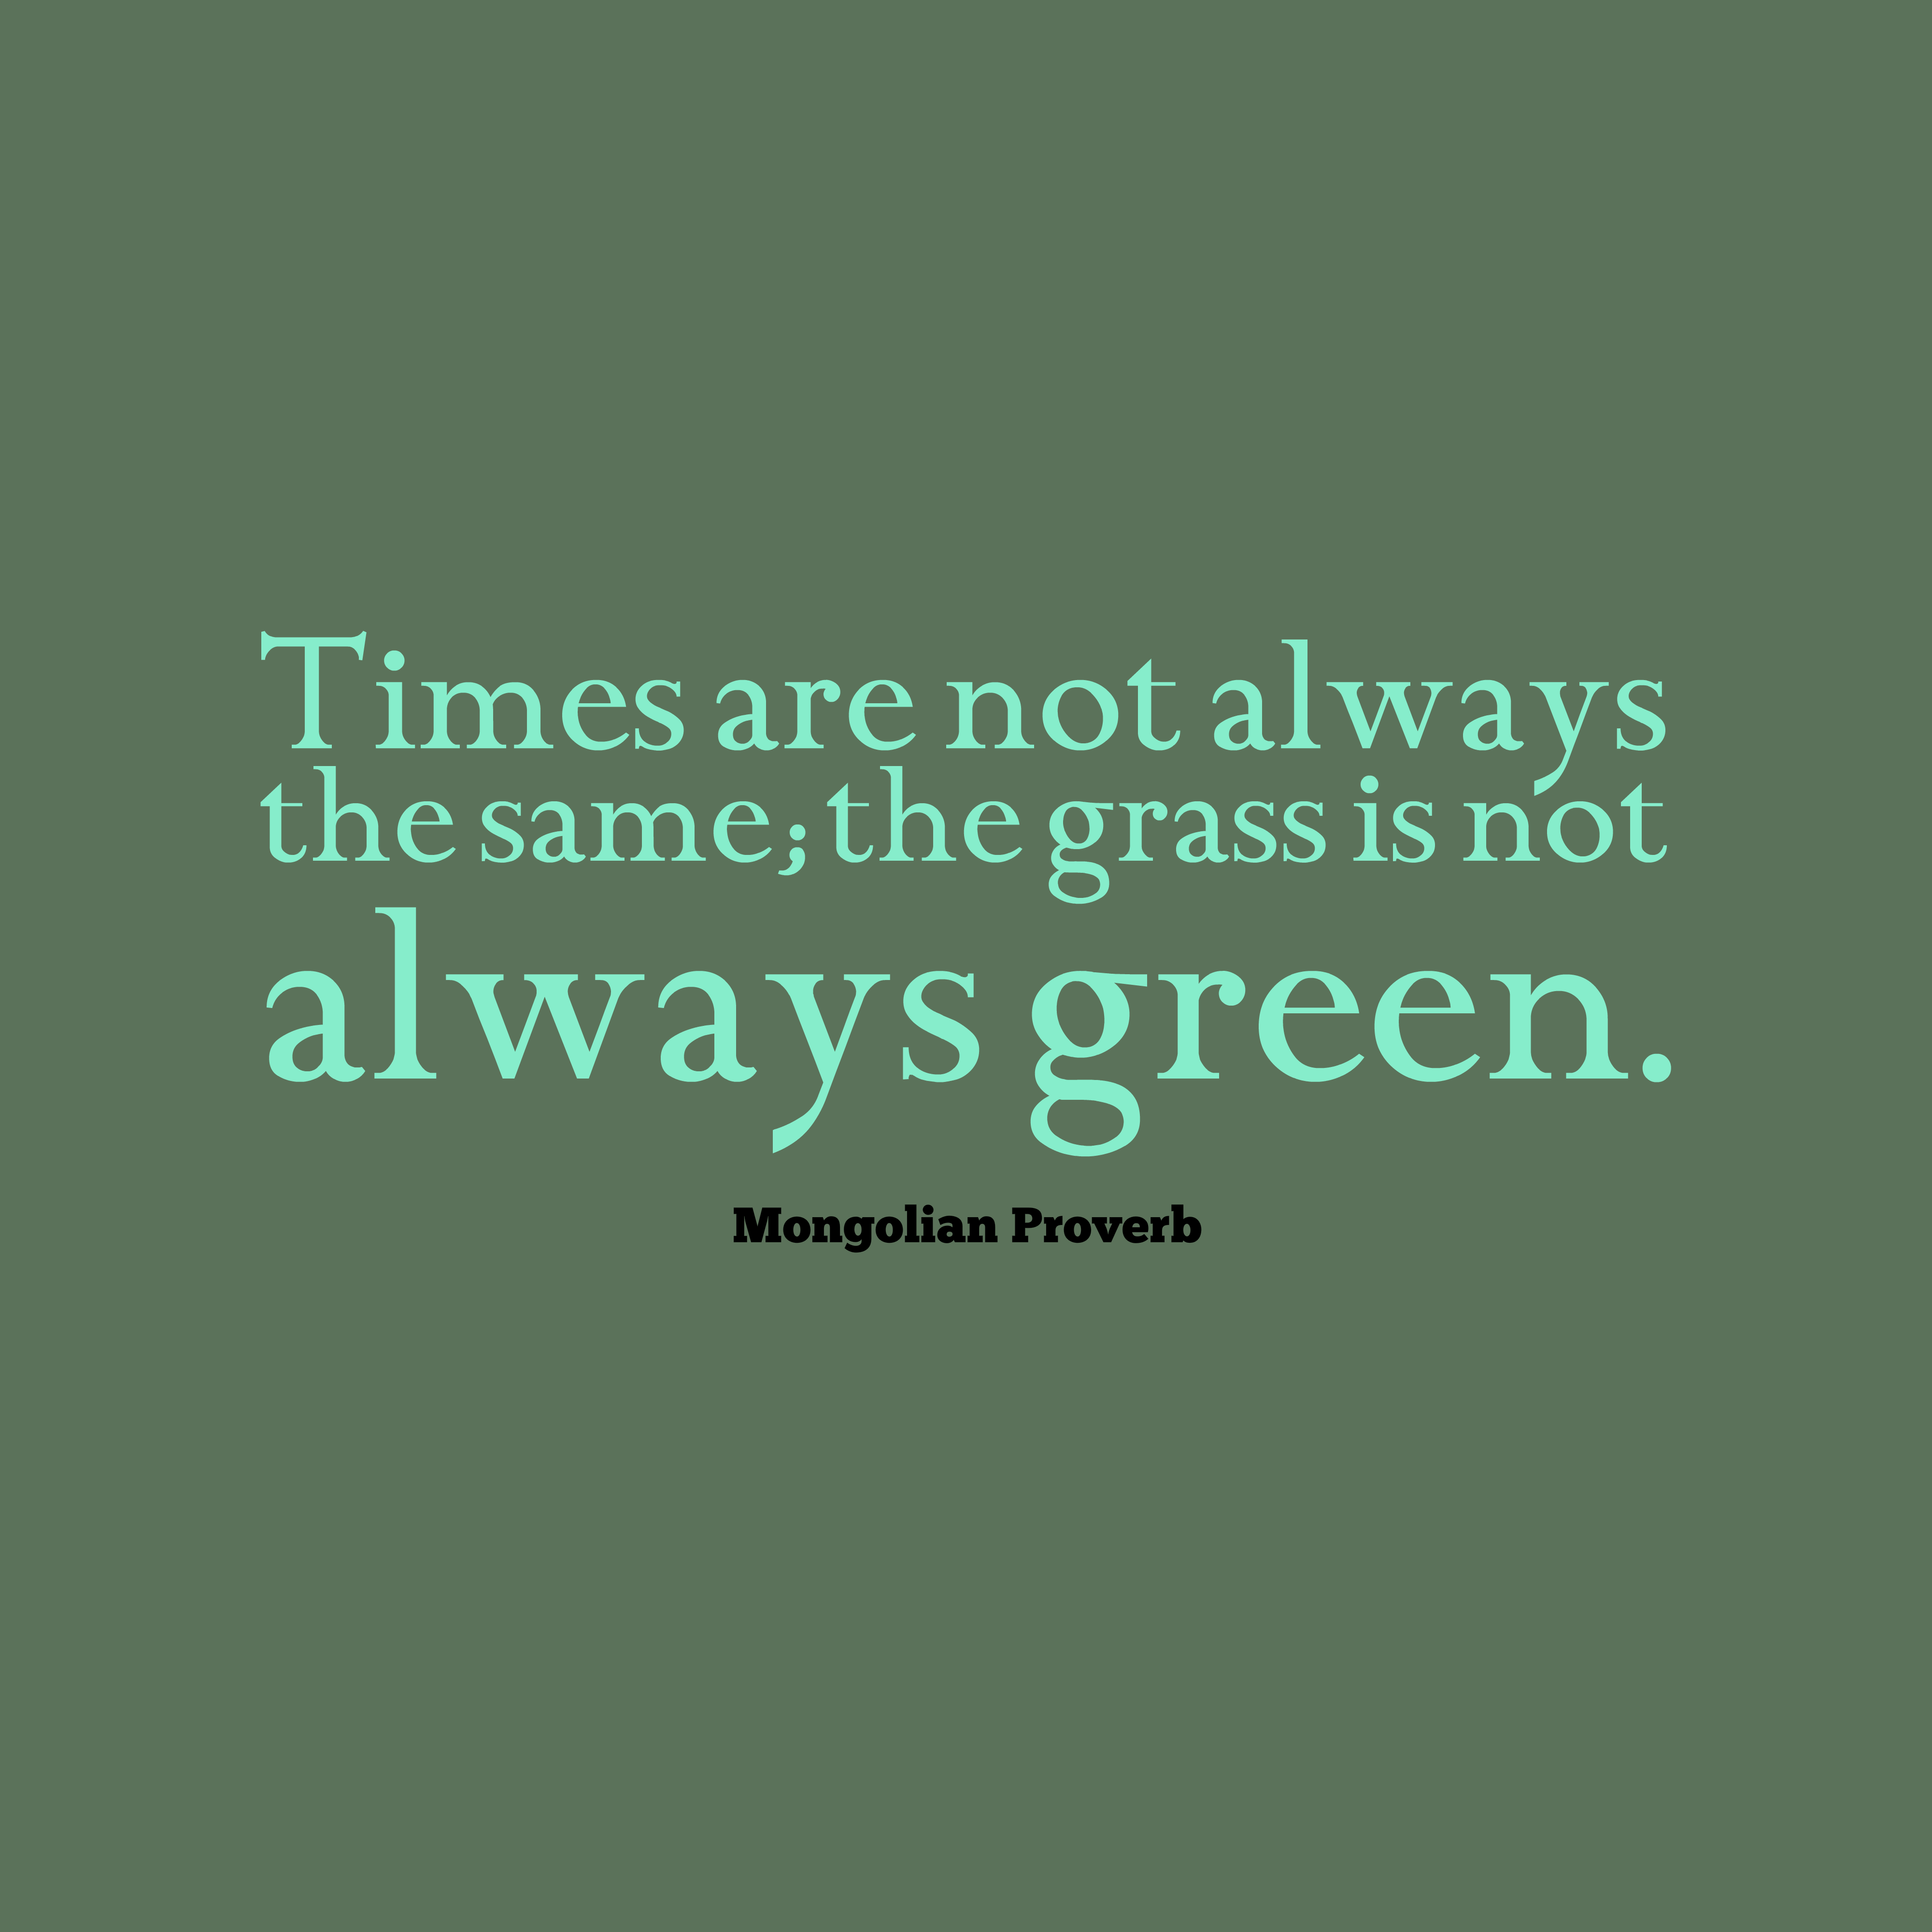 Quotes image of Times are not always the same; the grass is not always green.